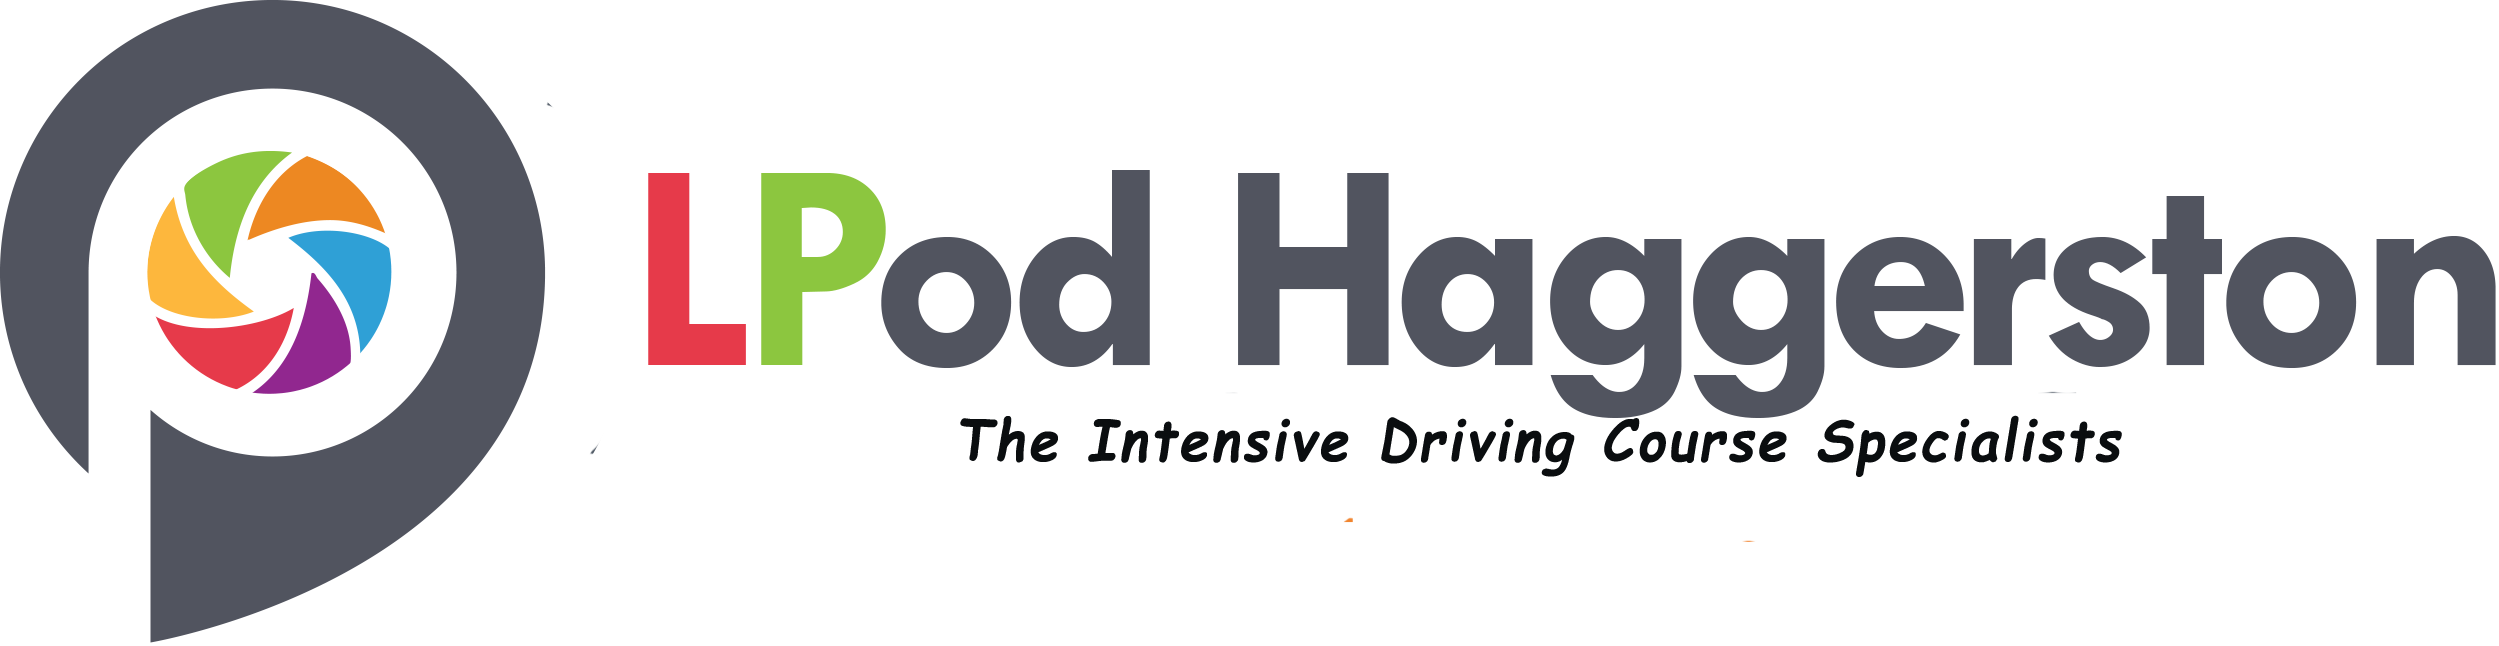 intensive driving courses haggerston, intensive driving school haggerston, intensive driving lessons haggerston, one week driving course haggerston, fast pass driving haggerston, crash driving courses haggerston, driving lessons haggerston, automatic driving lessons haggerston